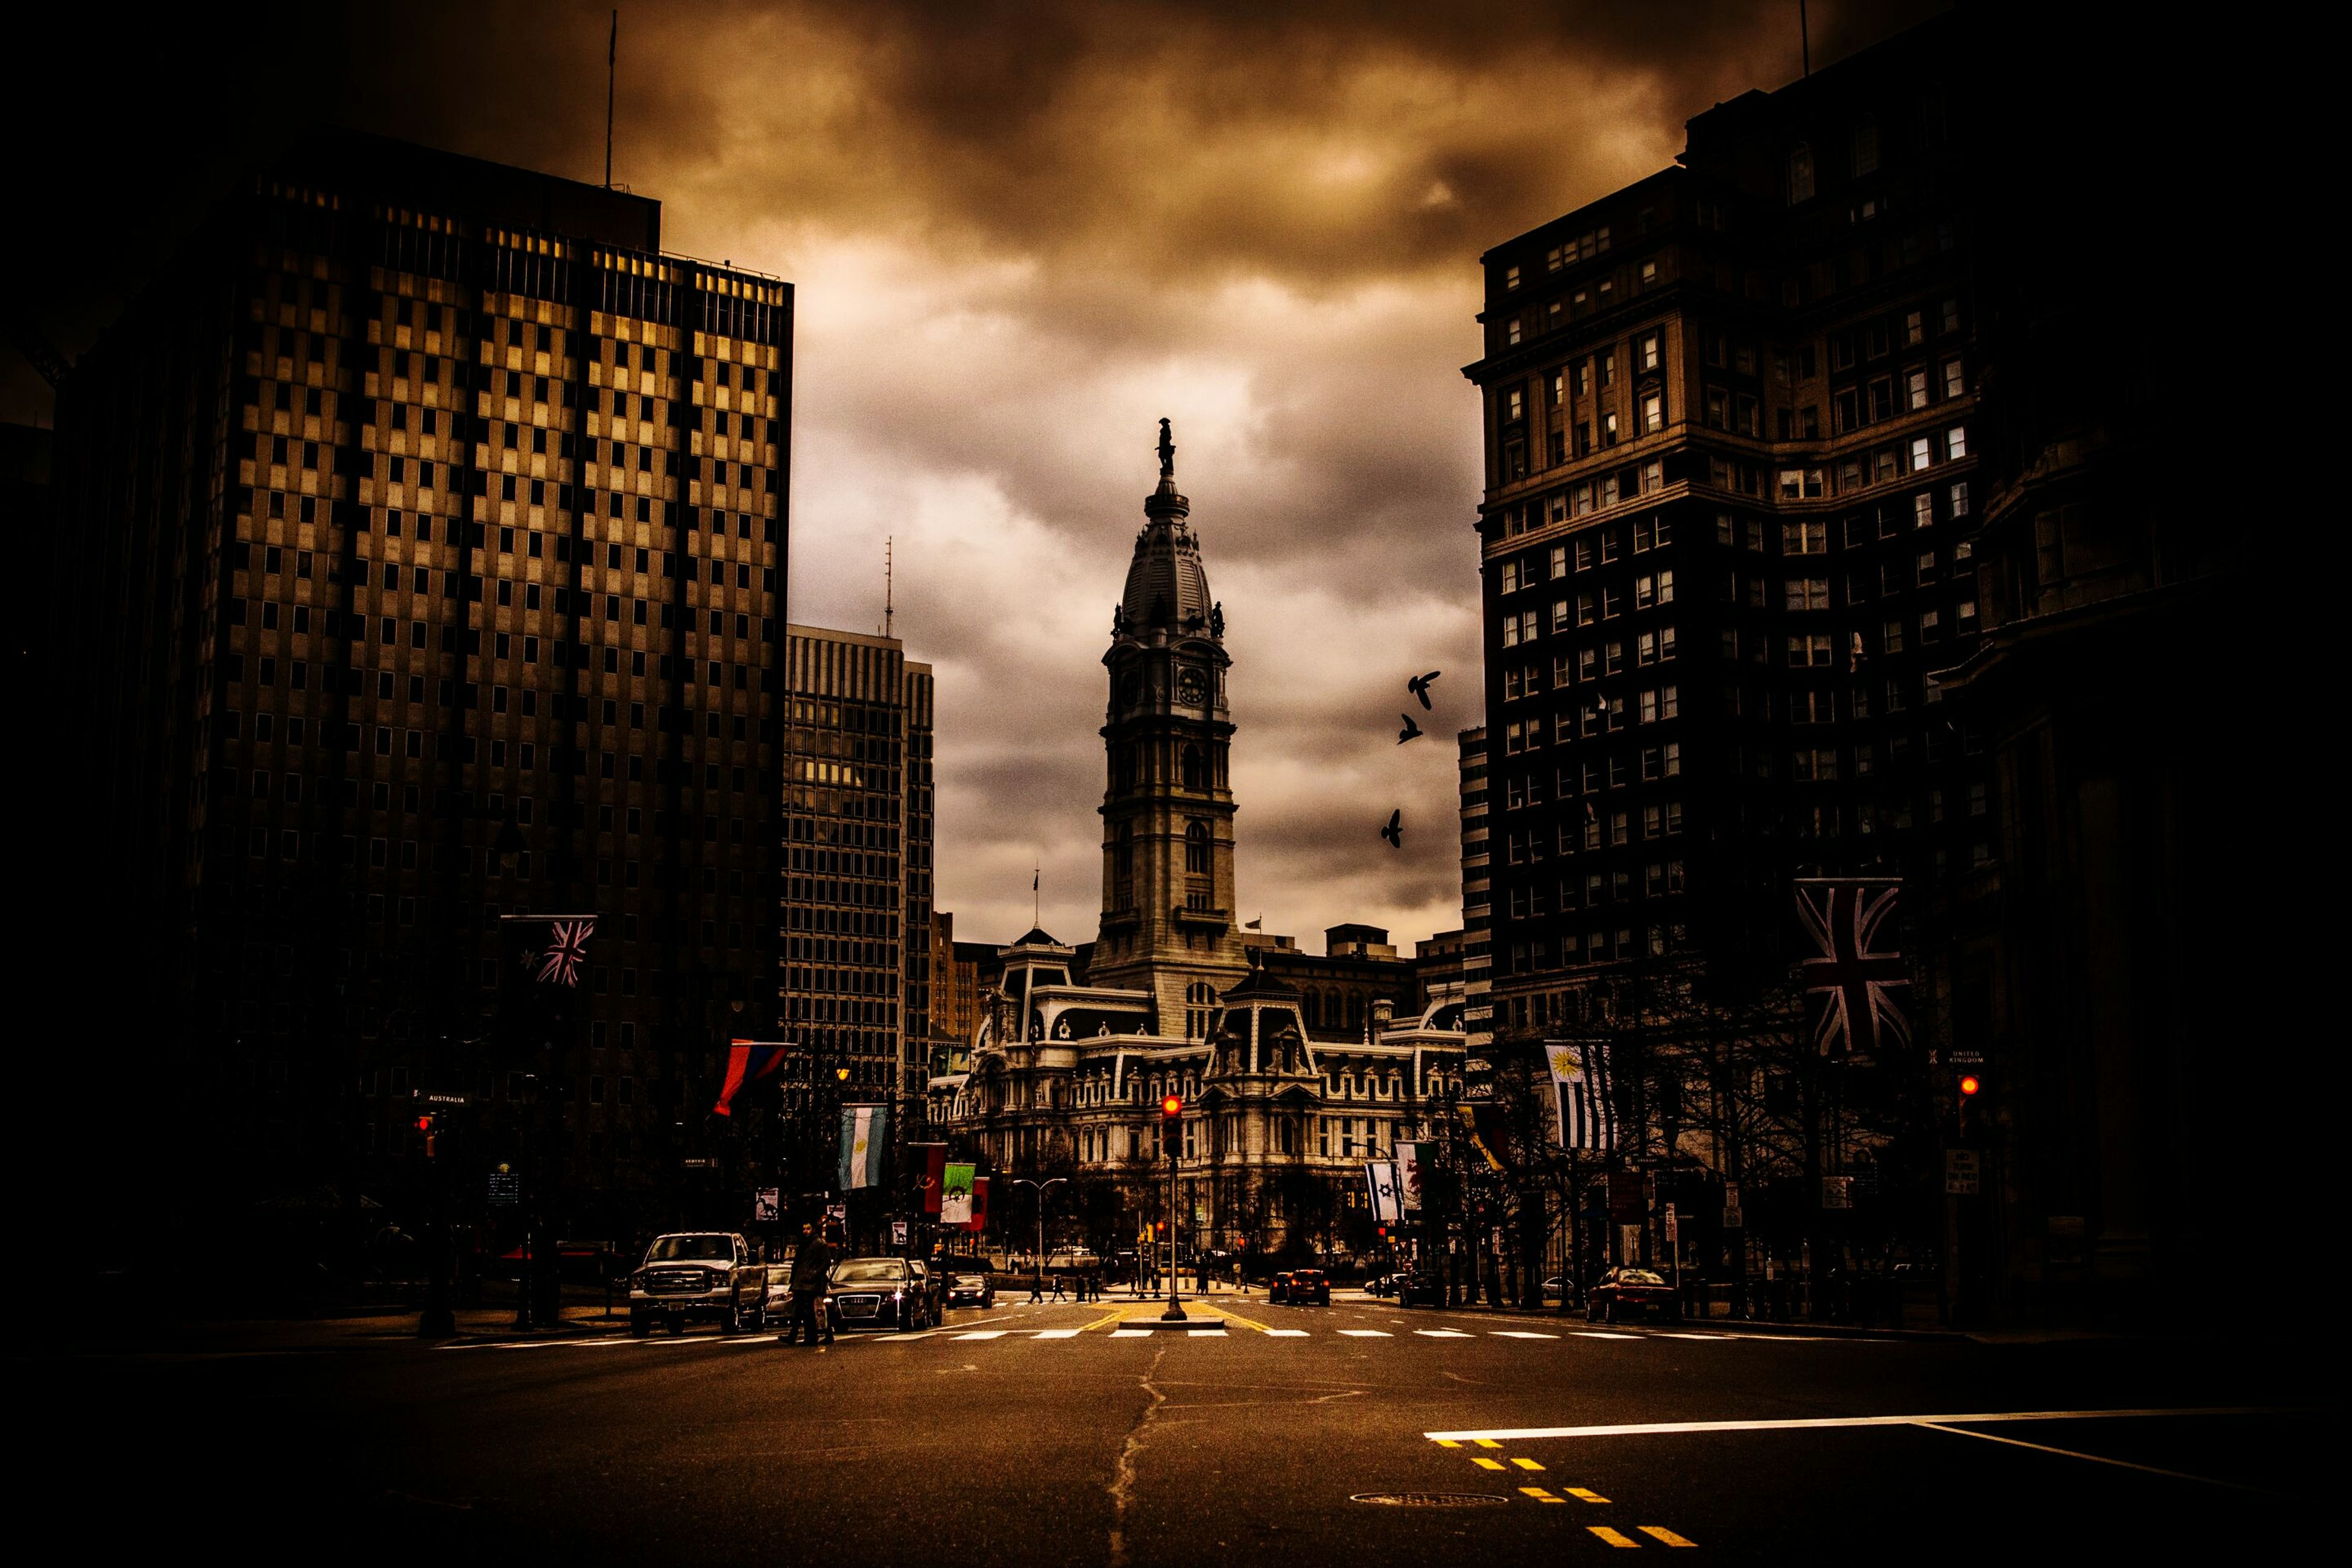 building exterior, architecture, built structure, city, sky, tower, tall - high, street, skyscraper, capital cities, cloud - sky, travel destinations, illuminated, city life, famous place, road, travel, building, dusk, office building